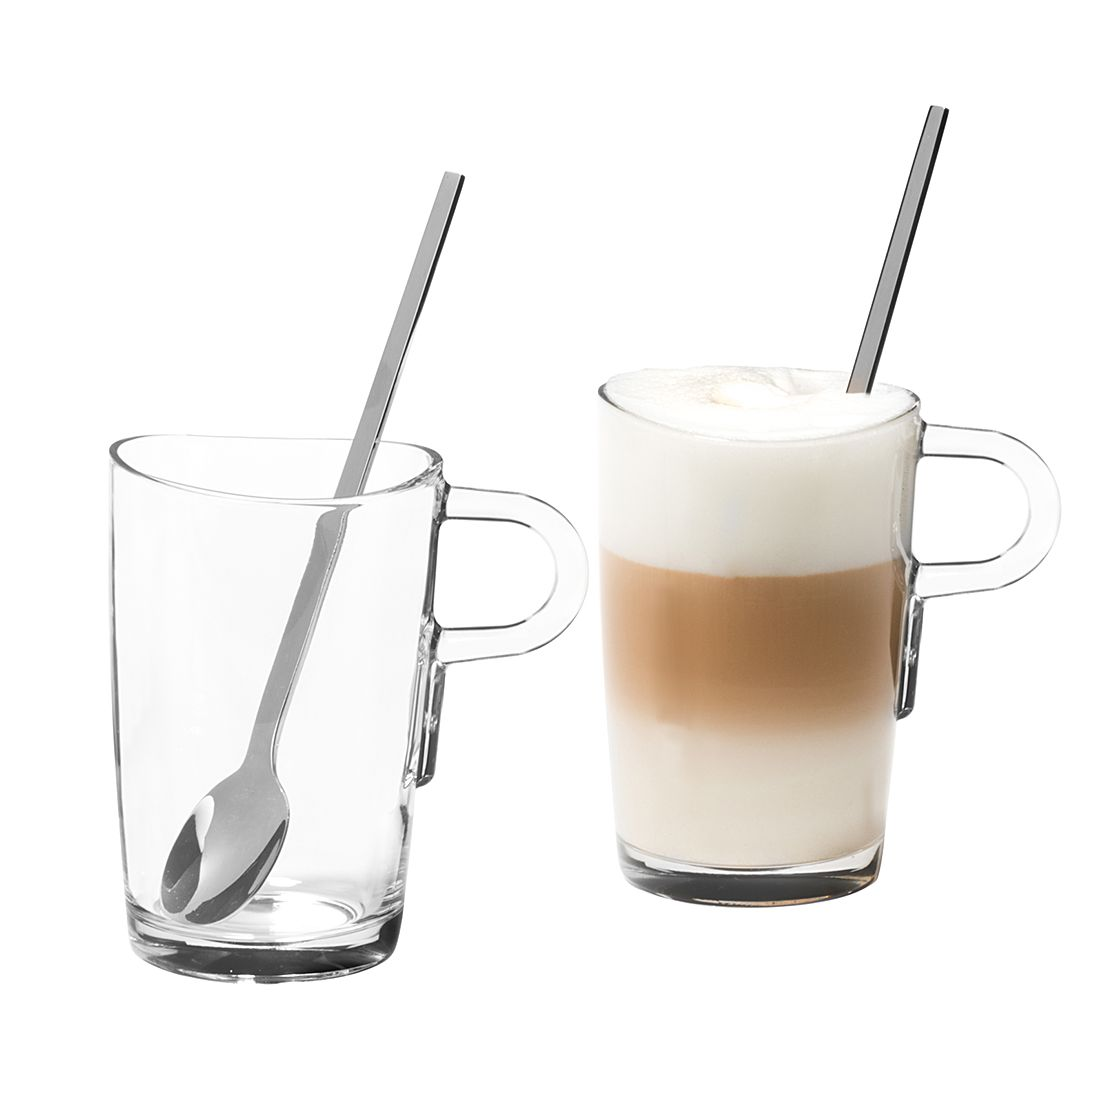 latte macchiato glas 11 cm preisvergleiche. Black Bedroom Furniture Sets. Home Design Ideas